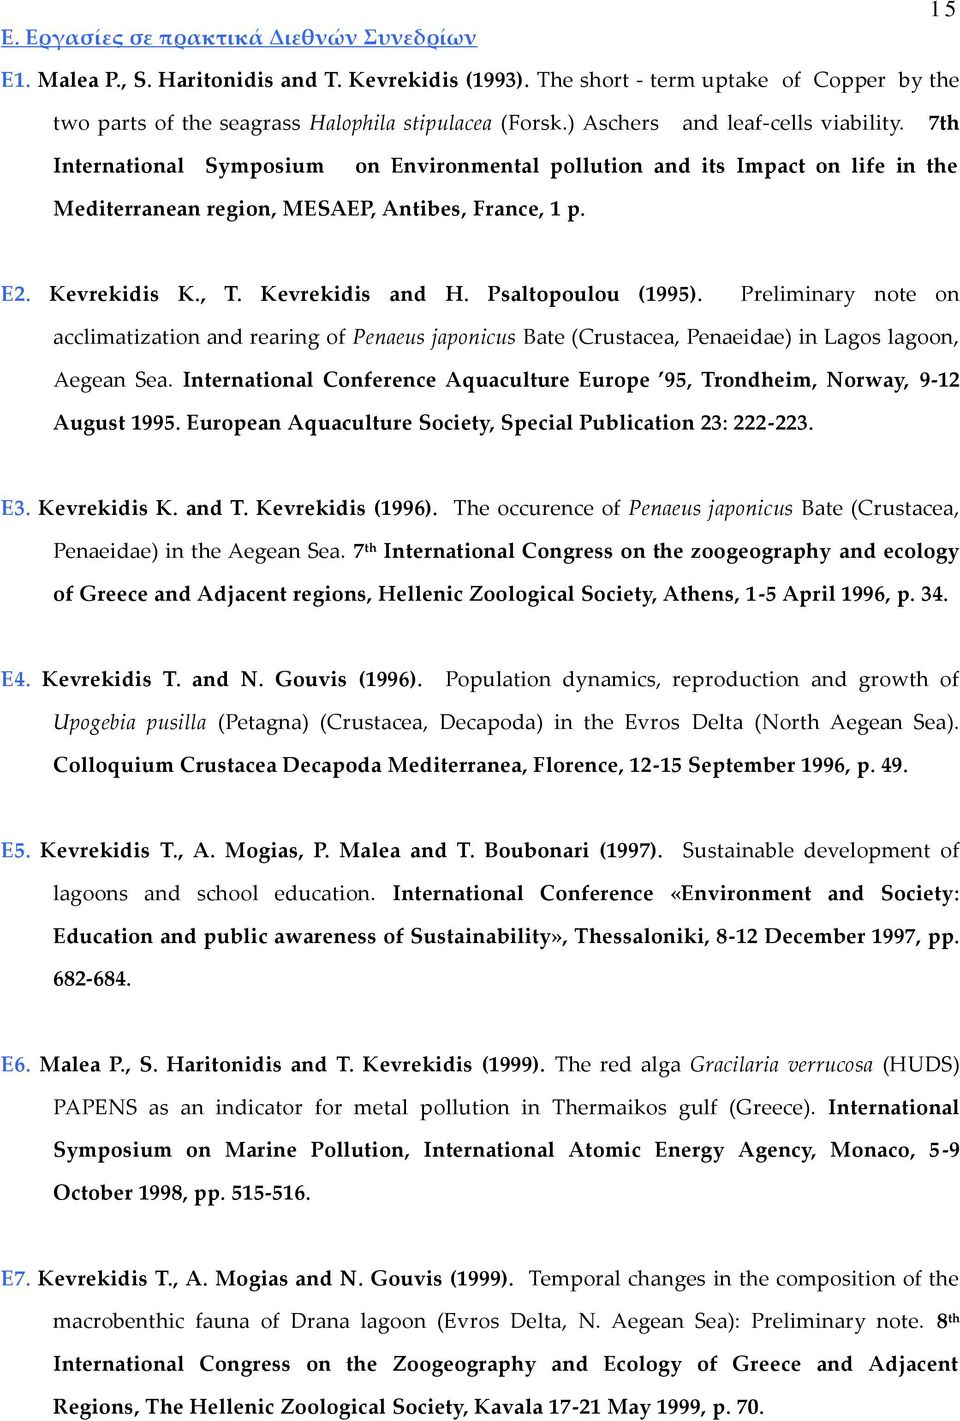 Kevrekidis and H. Psaltopoulou (1995). Preliminary note on acclimatization and rearing of Penaeus japonicus Bate (Crustacea, Penaeidae) in Lagos lagoon, Aegean Sea.